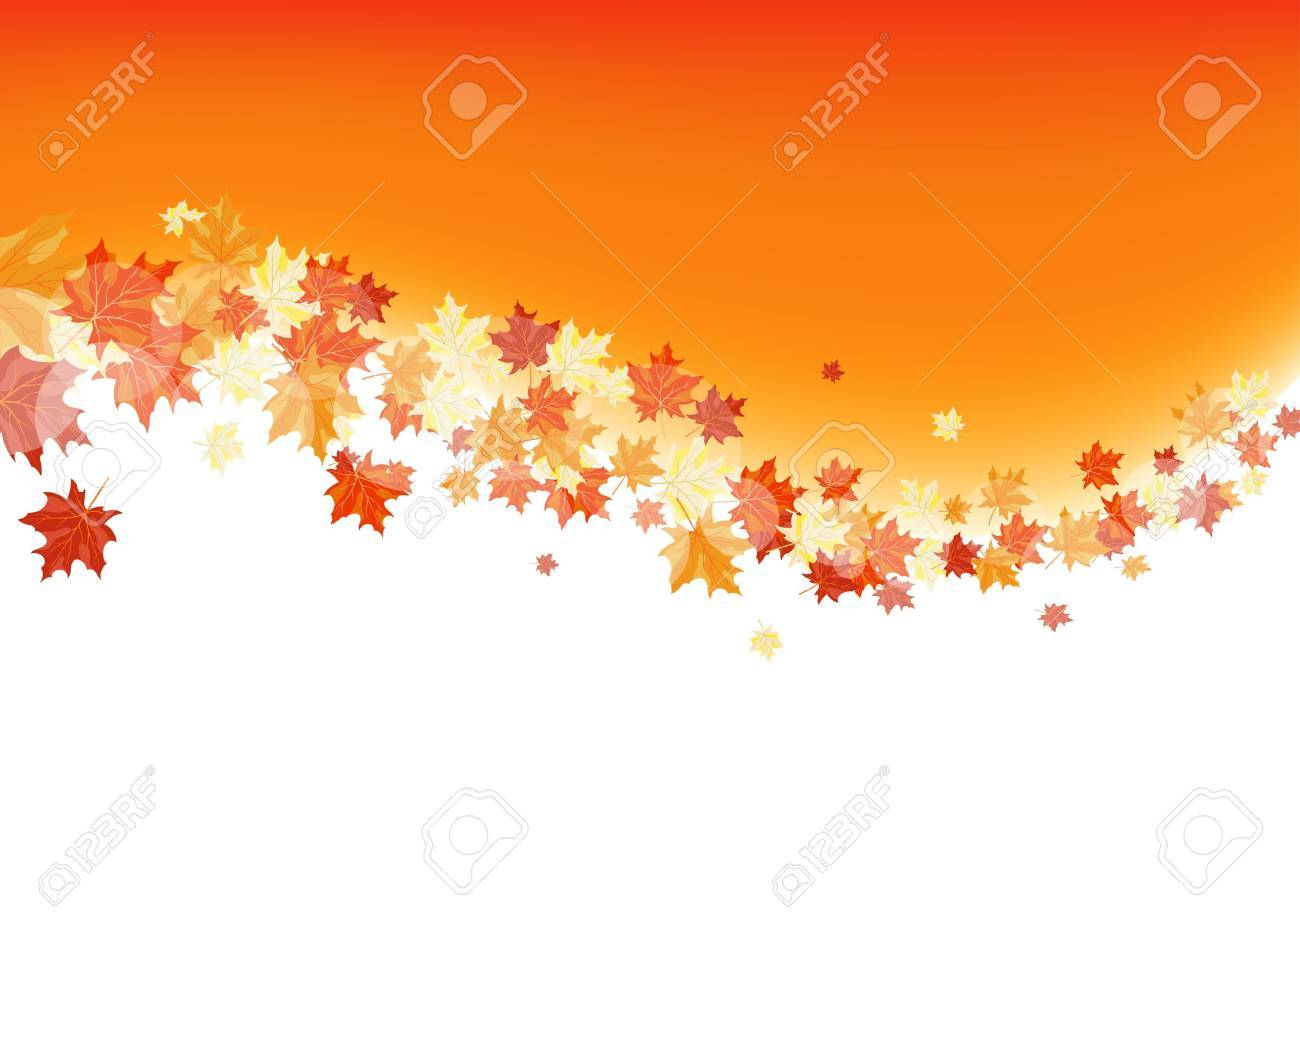 Autumn maples falling leaves background. Stock Vector - 14853740